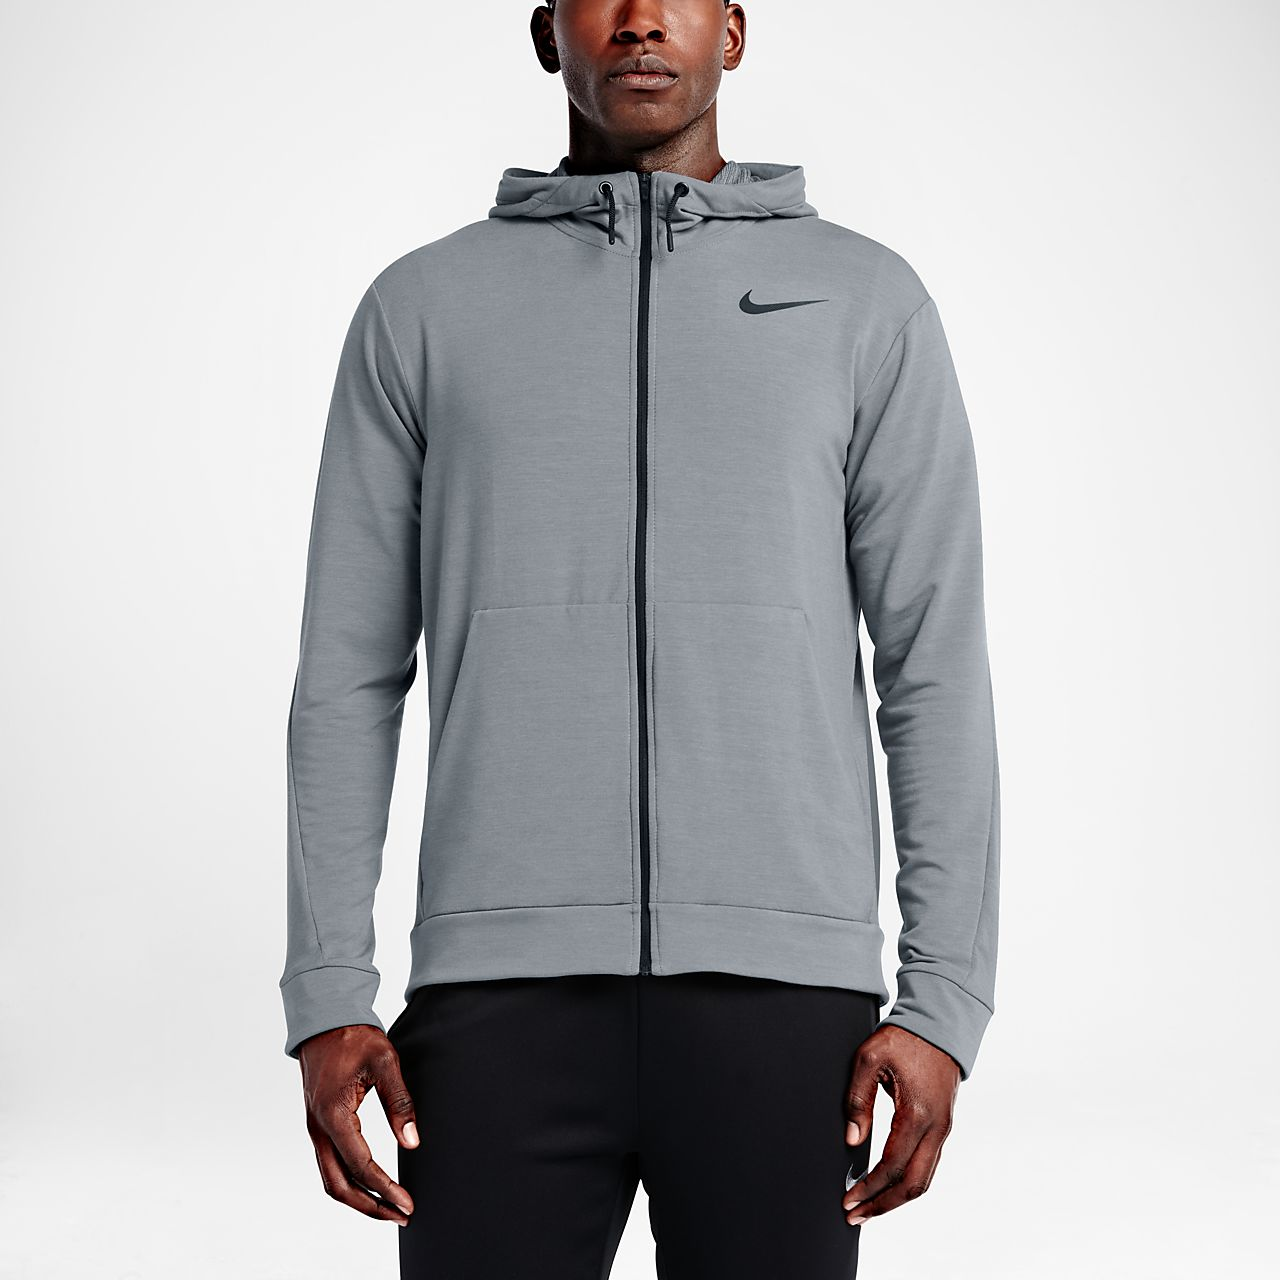 ... Nike Dri-FIT Men's Training Full-Zip Hoodie